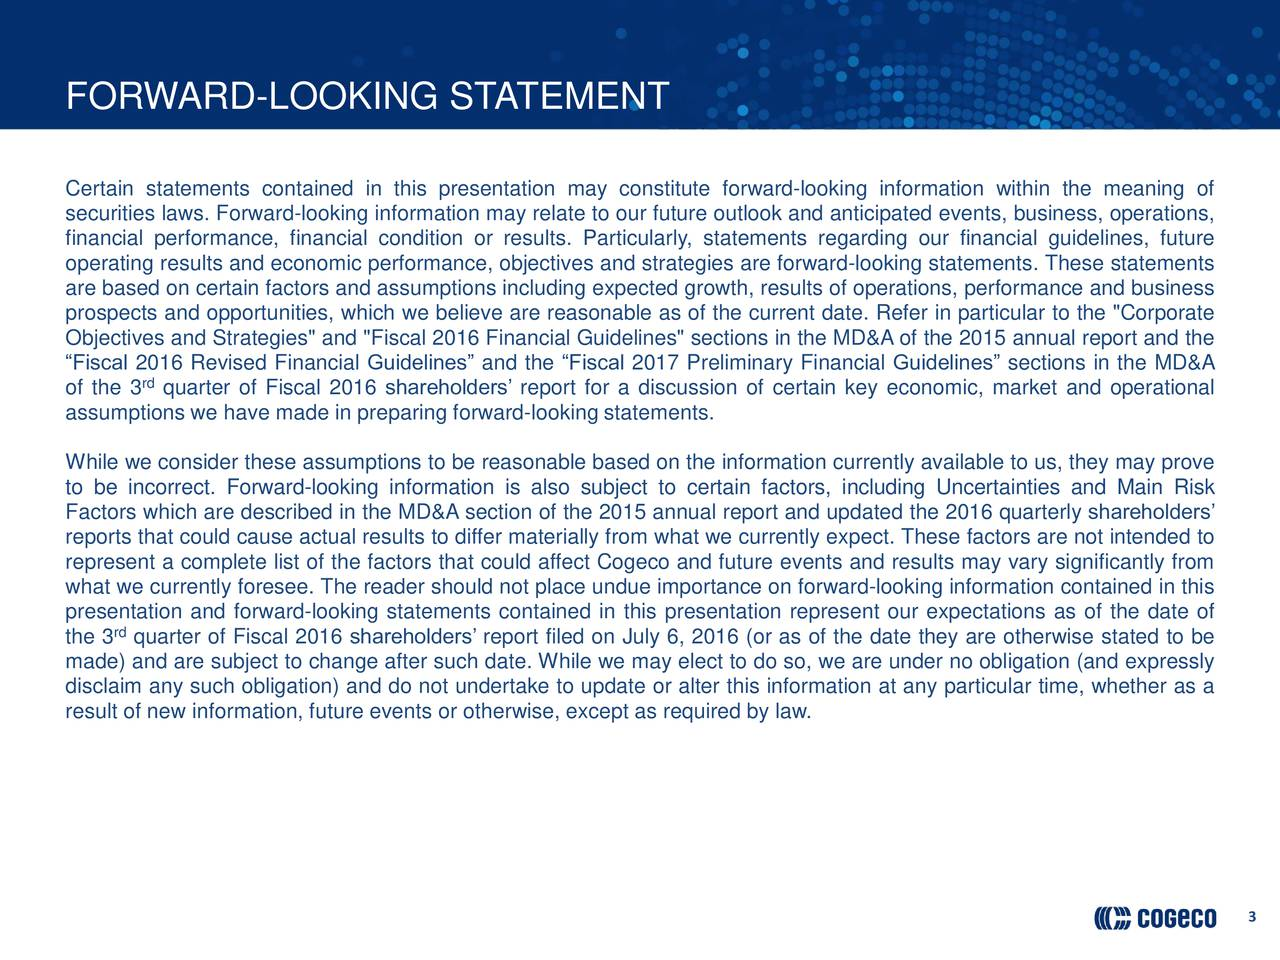 "Certain statements contained in this presentation may constitute forward-looking information within the meaning of securities laws. Forward-looking information may relate to our future outlook and anticipated events, business, operations, financial performance, financial condition or results. Particularly, statements regarding our financial guidelines, future operating results and economic performance, objectives and strategies are forward-looking statements. These statements are based on certain factors and assumptions including expected growth, results of operations, performance and business prospects and opportunities, which we believe are reasonable as of the current date. Refer in particular to the ""Corporate Objectives and Strategies"" and ""Fiscal 2016 Financial Guidelines"" sections in the MD&A of the 2015 annual report and the Fiscal 2016 Revised Financial Guidelines and the Fiscal 2017 Preliminary Financial Guidelines sections in the MD&A of the 3 quarter of Fiscal 2016 shareholders report for a discussion of certain key economic, market and operational assumptions we have made in preparing forward-looking statements. While we consider these assumptions to be reasonable based on the information currently available to us, they may prove to be incorrect. Forward-looking information is also subject to certain factors, including Uncertainties and Main Risk Factors which are described in the MD&A section of the 2015 annual report and updated the 2016 quarterly shareholders reports that could cause actual results to differ materially from what we currently expect. These factors are not intended to represent a complete list of the factors that could affect Cogeco and future events and results may vary significantly from what we currently foresee. The reader should not place undue importance on forward-looking information contained in this presentation and forward-looking statements contained in this presentation represent our expectations as of the date of the 3 quarter of Fiscal 2016 shareholders report filed on July 6, 2016 (or as of the date they are otherwise stated to be made) and are subject to change after such date. While we may elect to do so, we are under no obligation (and expressly disclaim any such obligation) and do not undertake to update or alter this information at any particular time, whether as a result of new information, future events or otherwise, except as required by law. 3"